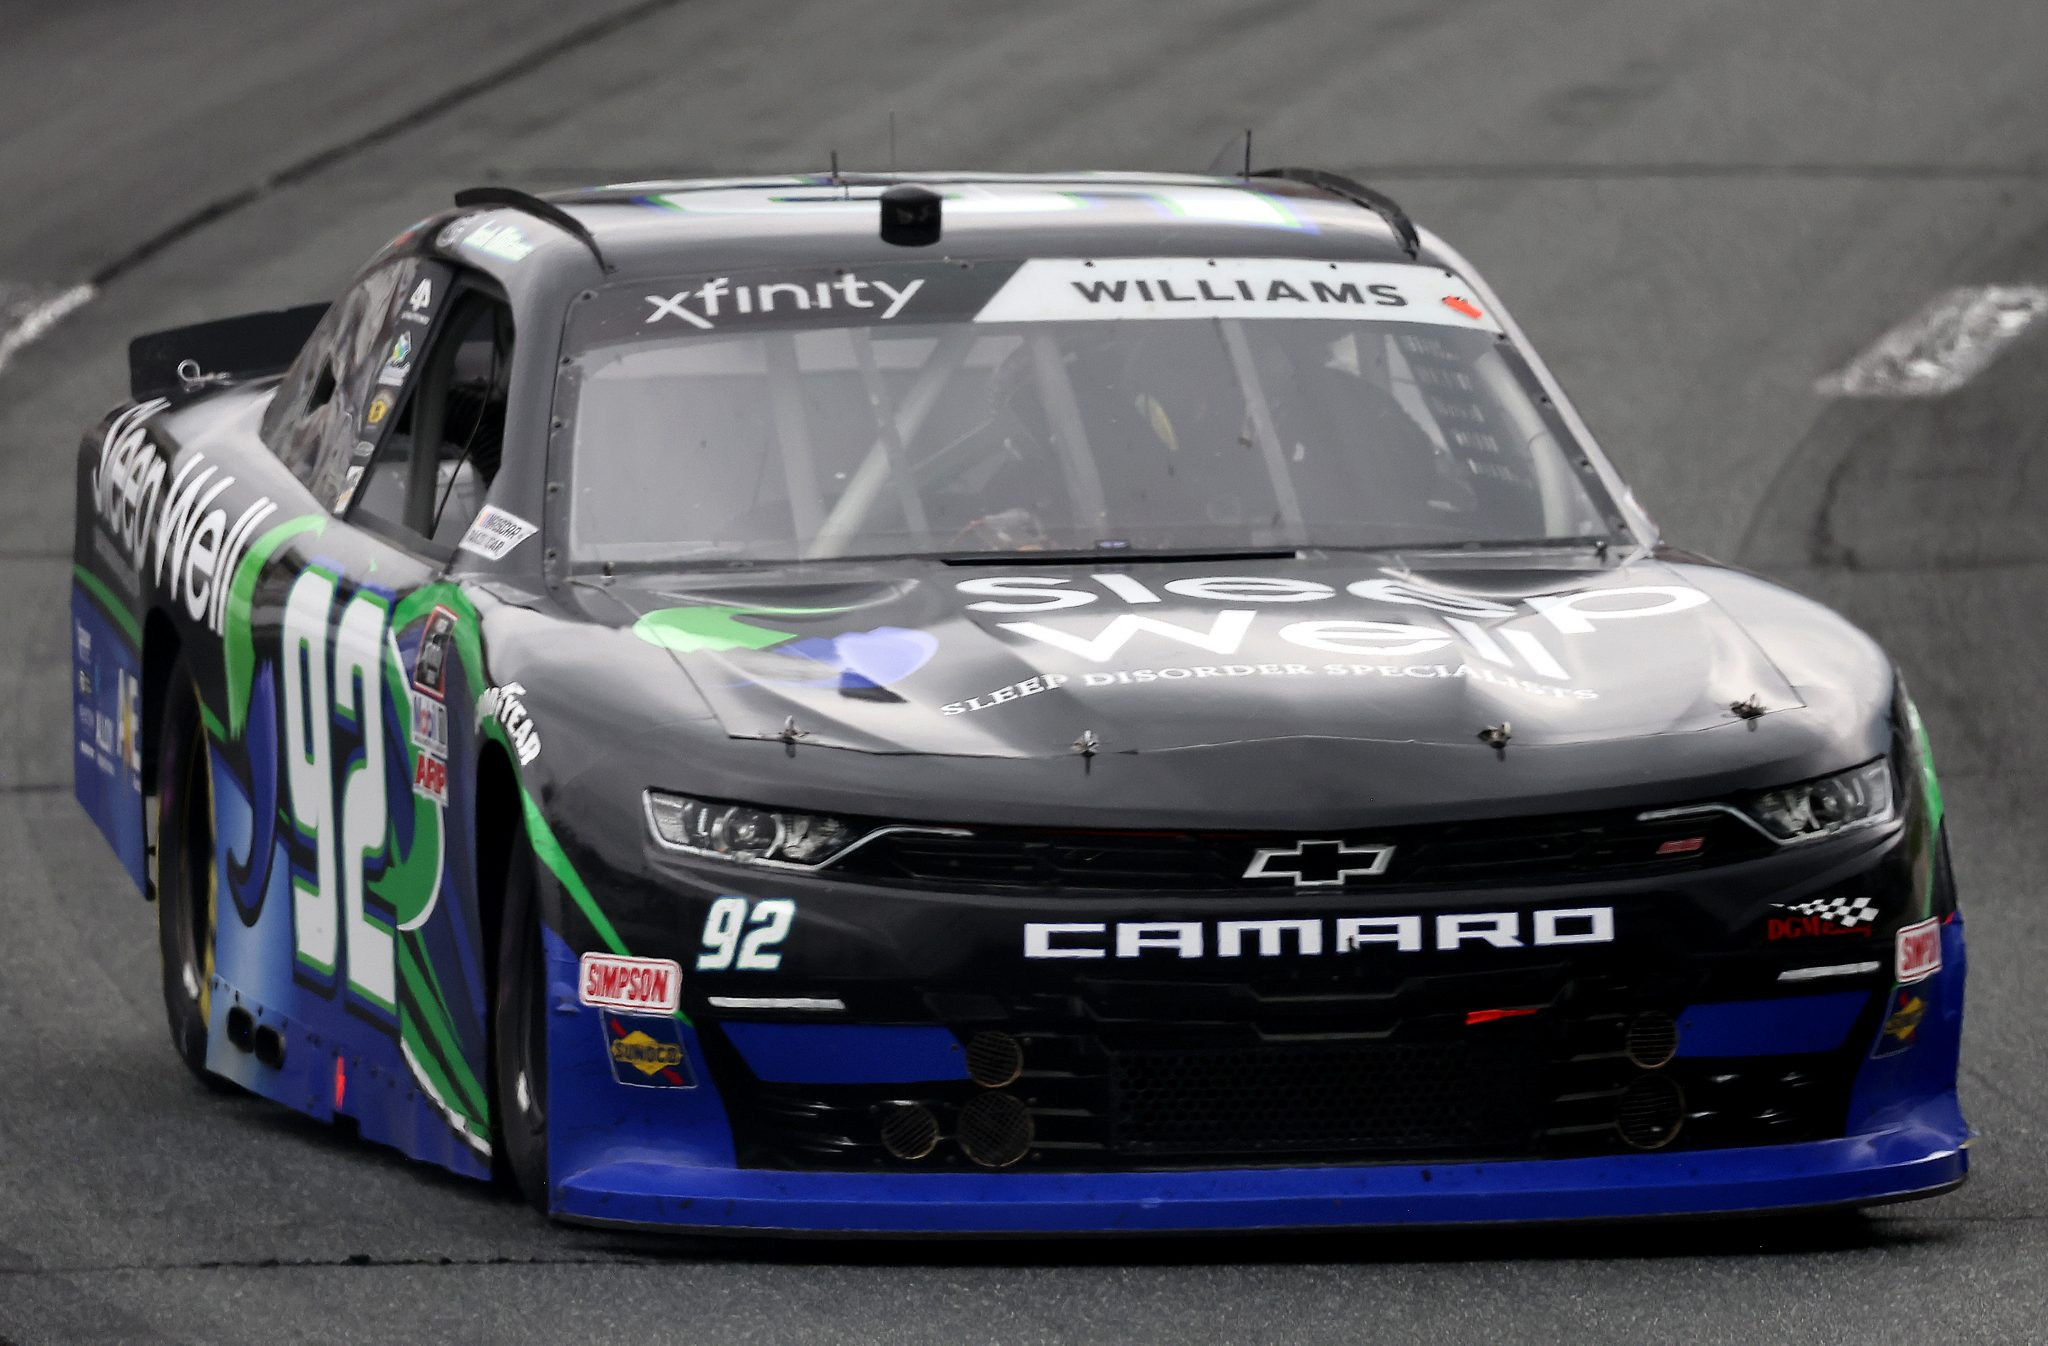 LOUDON, NEW HAMPSHIRE - JULY 17: Josh Williams, driver of the #92 Sleep Well/ANE Elctic Chevrolet, drives during the NASCAR Xfinity Series Ambetter Get Vaccinated 200 at New Hampshire Motor Speedway on July 17, 2021 in Loudon, New Hampshire. (Photo by James Gilbert/Getty Images)   Getty Images